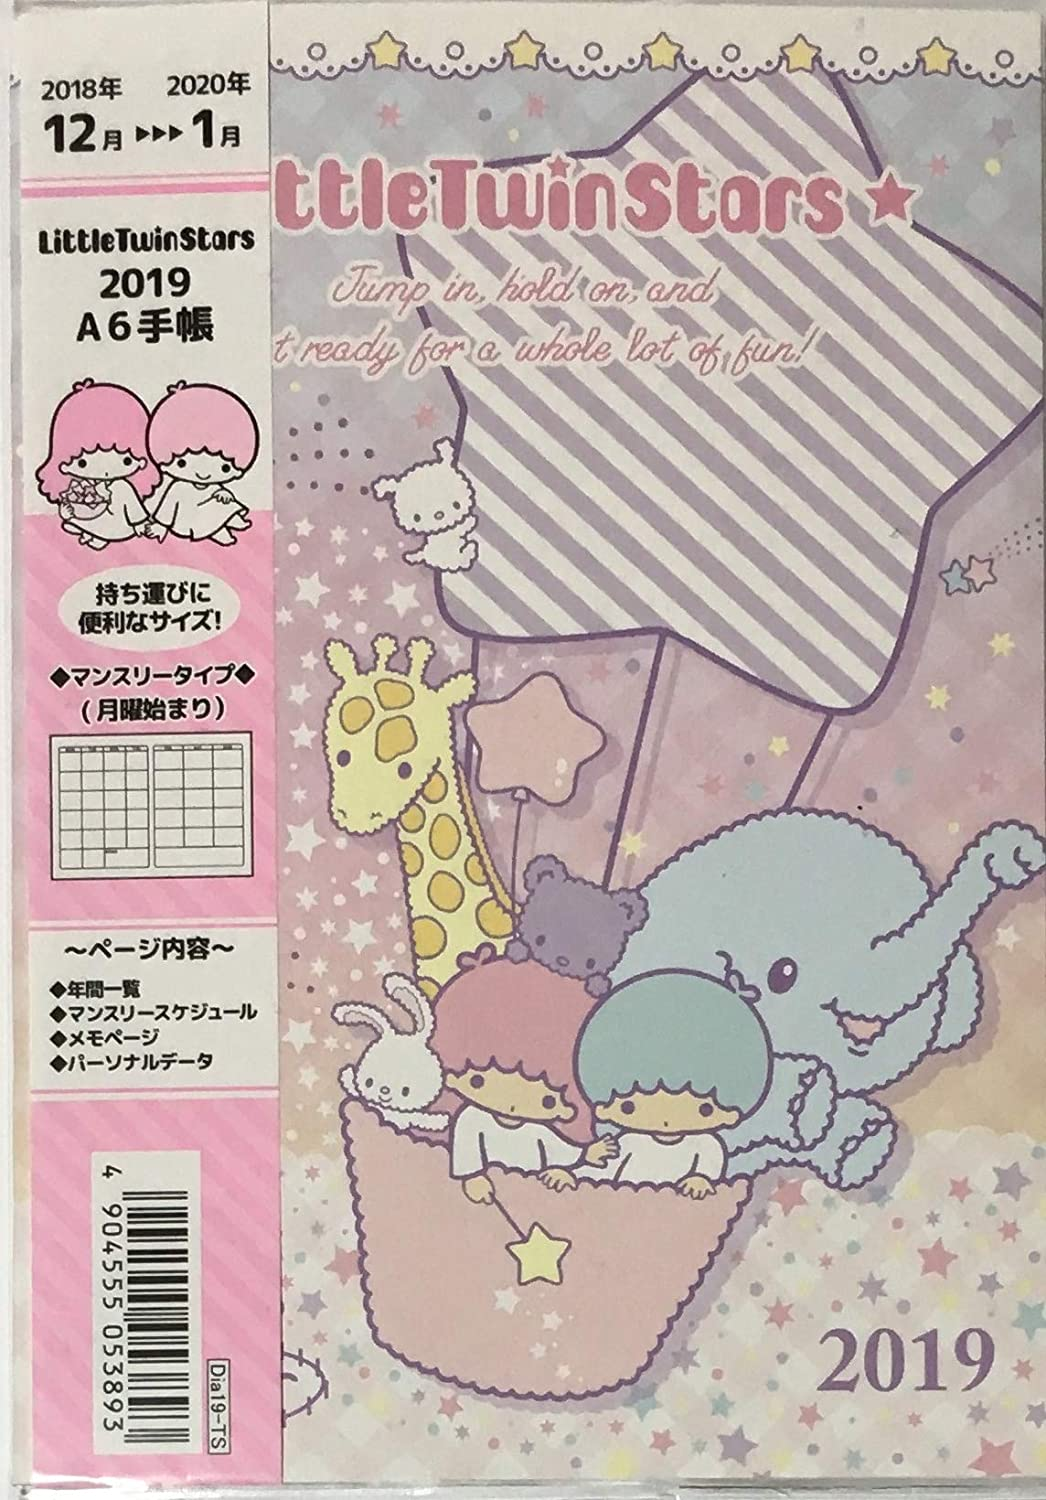 Sanrio Little Twin Stars Japanese Schedule Calender Planner Notebook A6 Size 2019 12month with Clear Cover (Type-C)